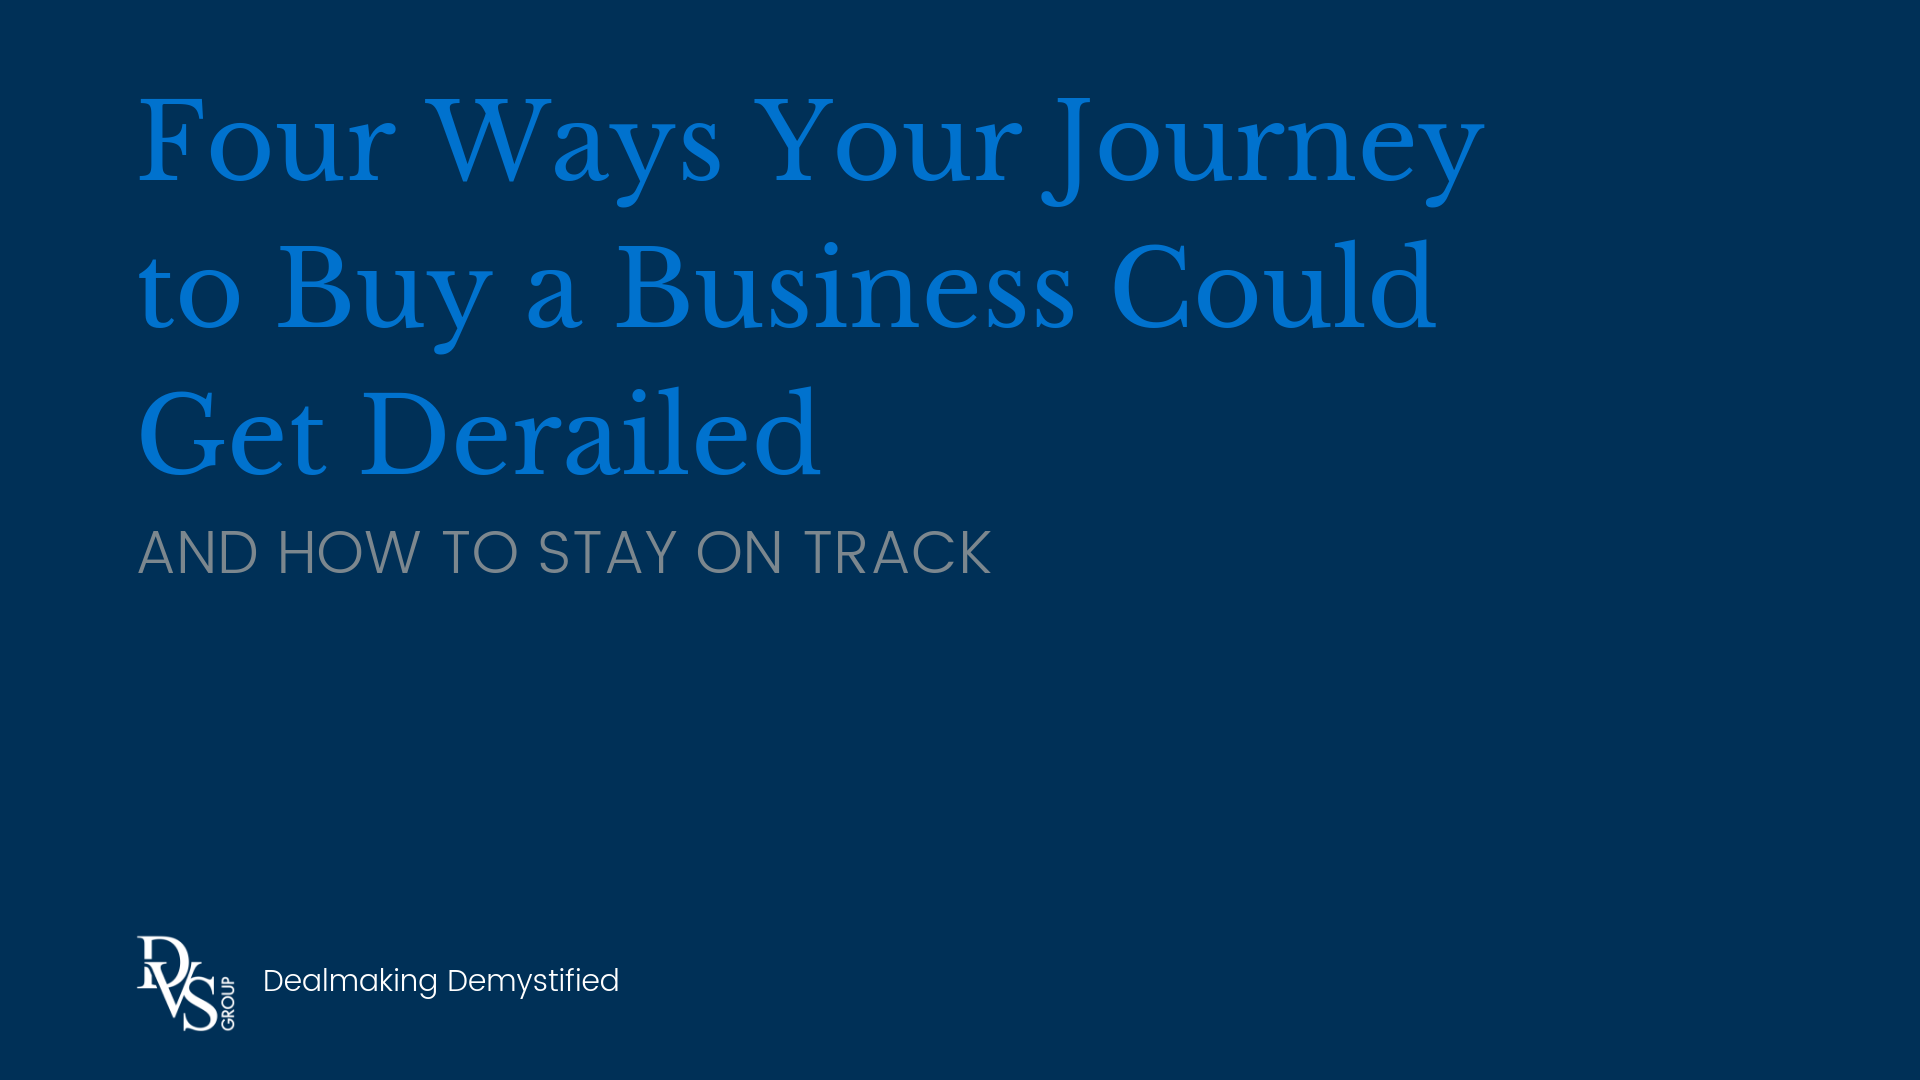 Four Ways Your Journey to Buy a Business Could be Derailed